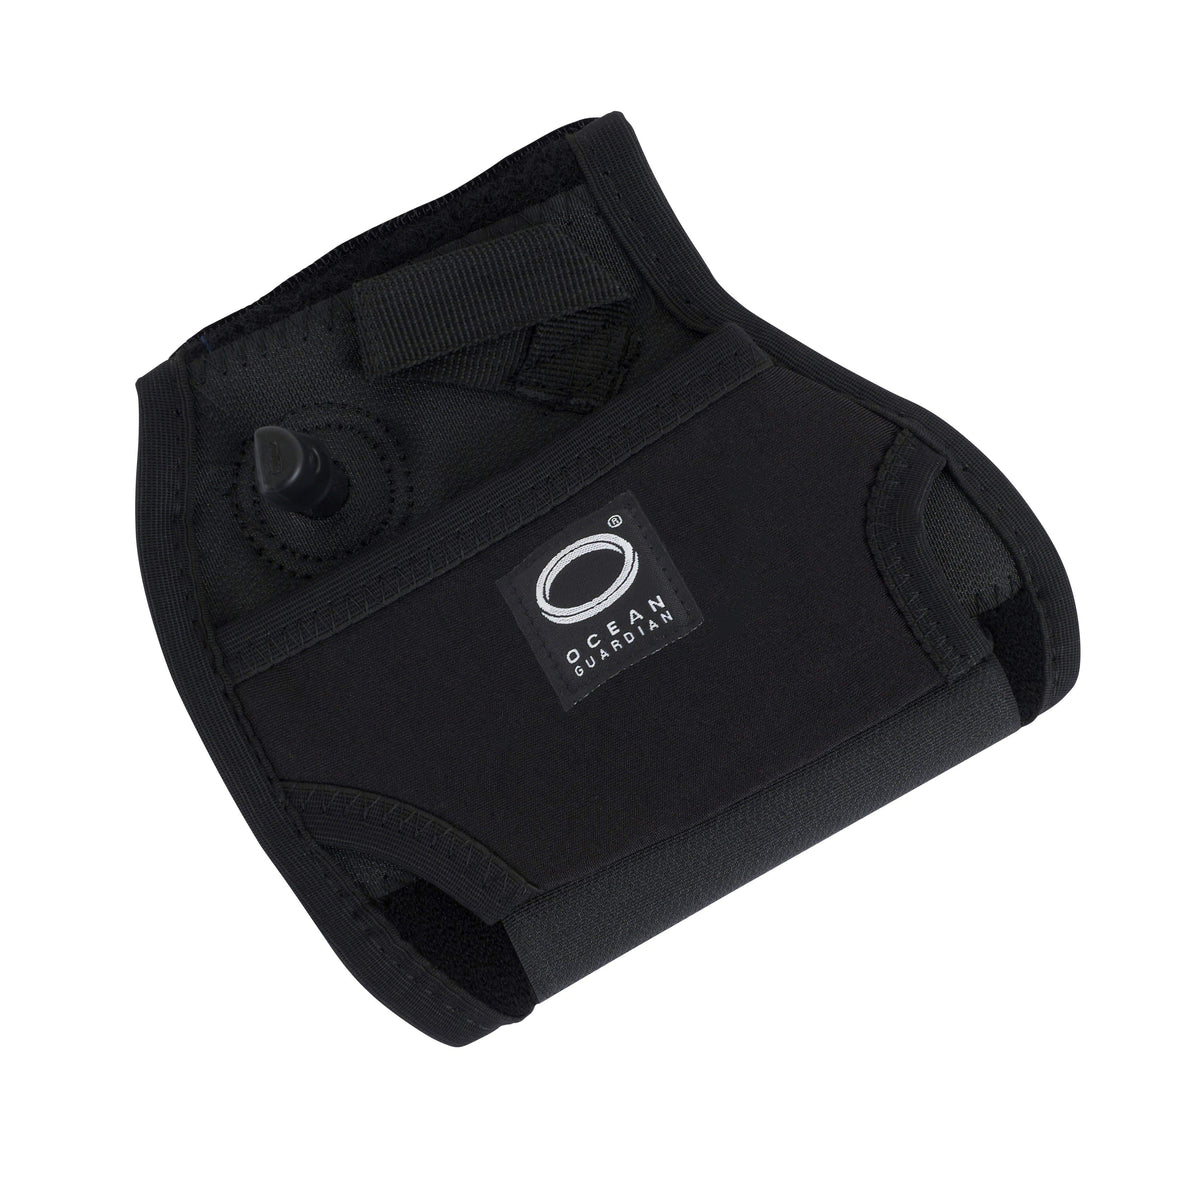 Ocean Guardian FREEDOM7 Neoprene Pouch. Powered by Shark Shield Technology.